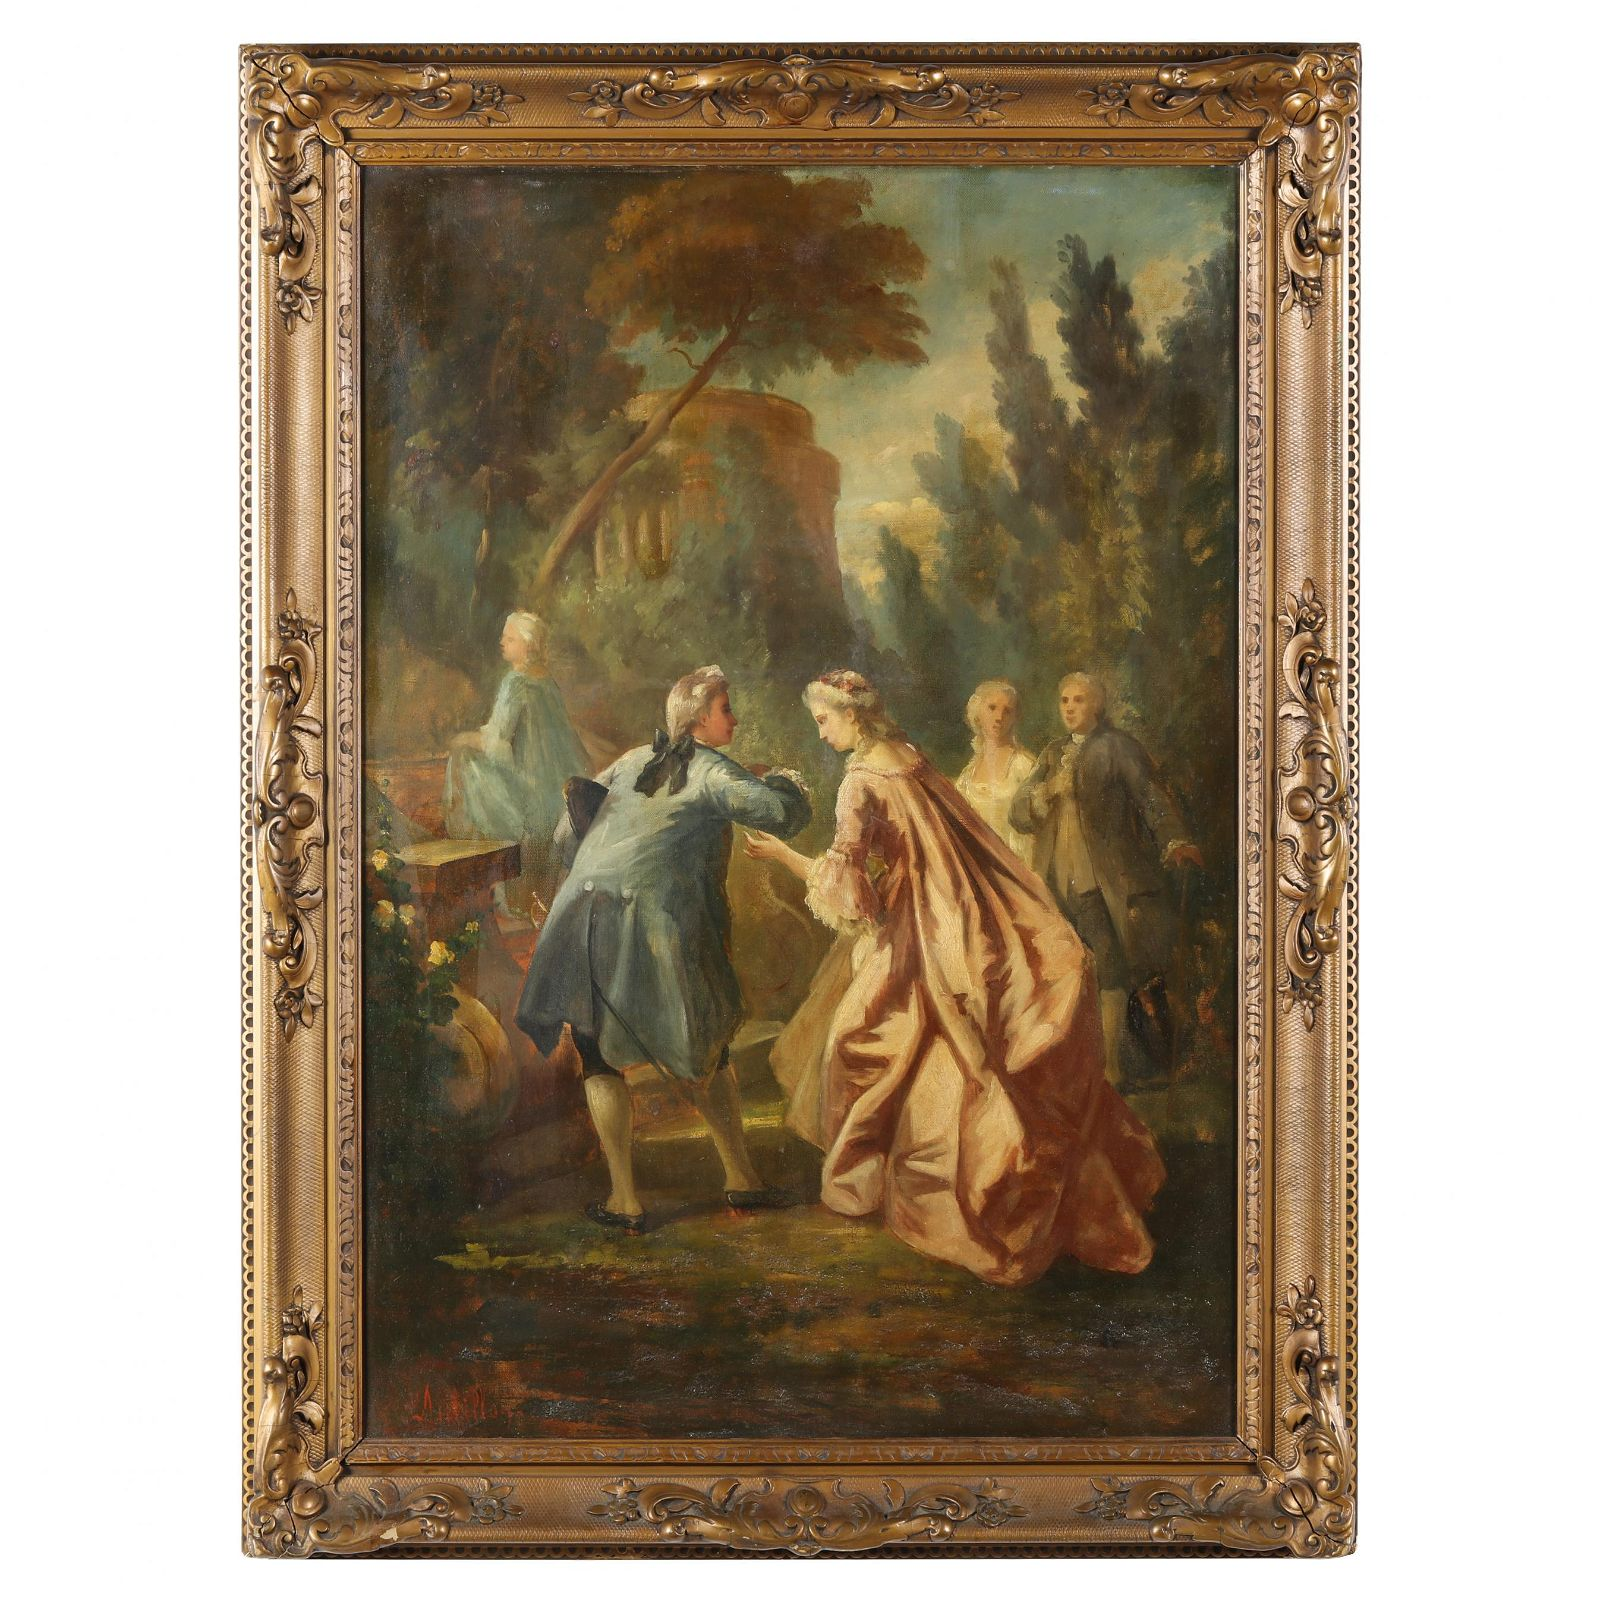 French School (circa 1900), Garden Scene with Courtly